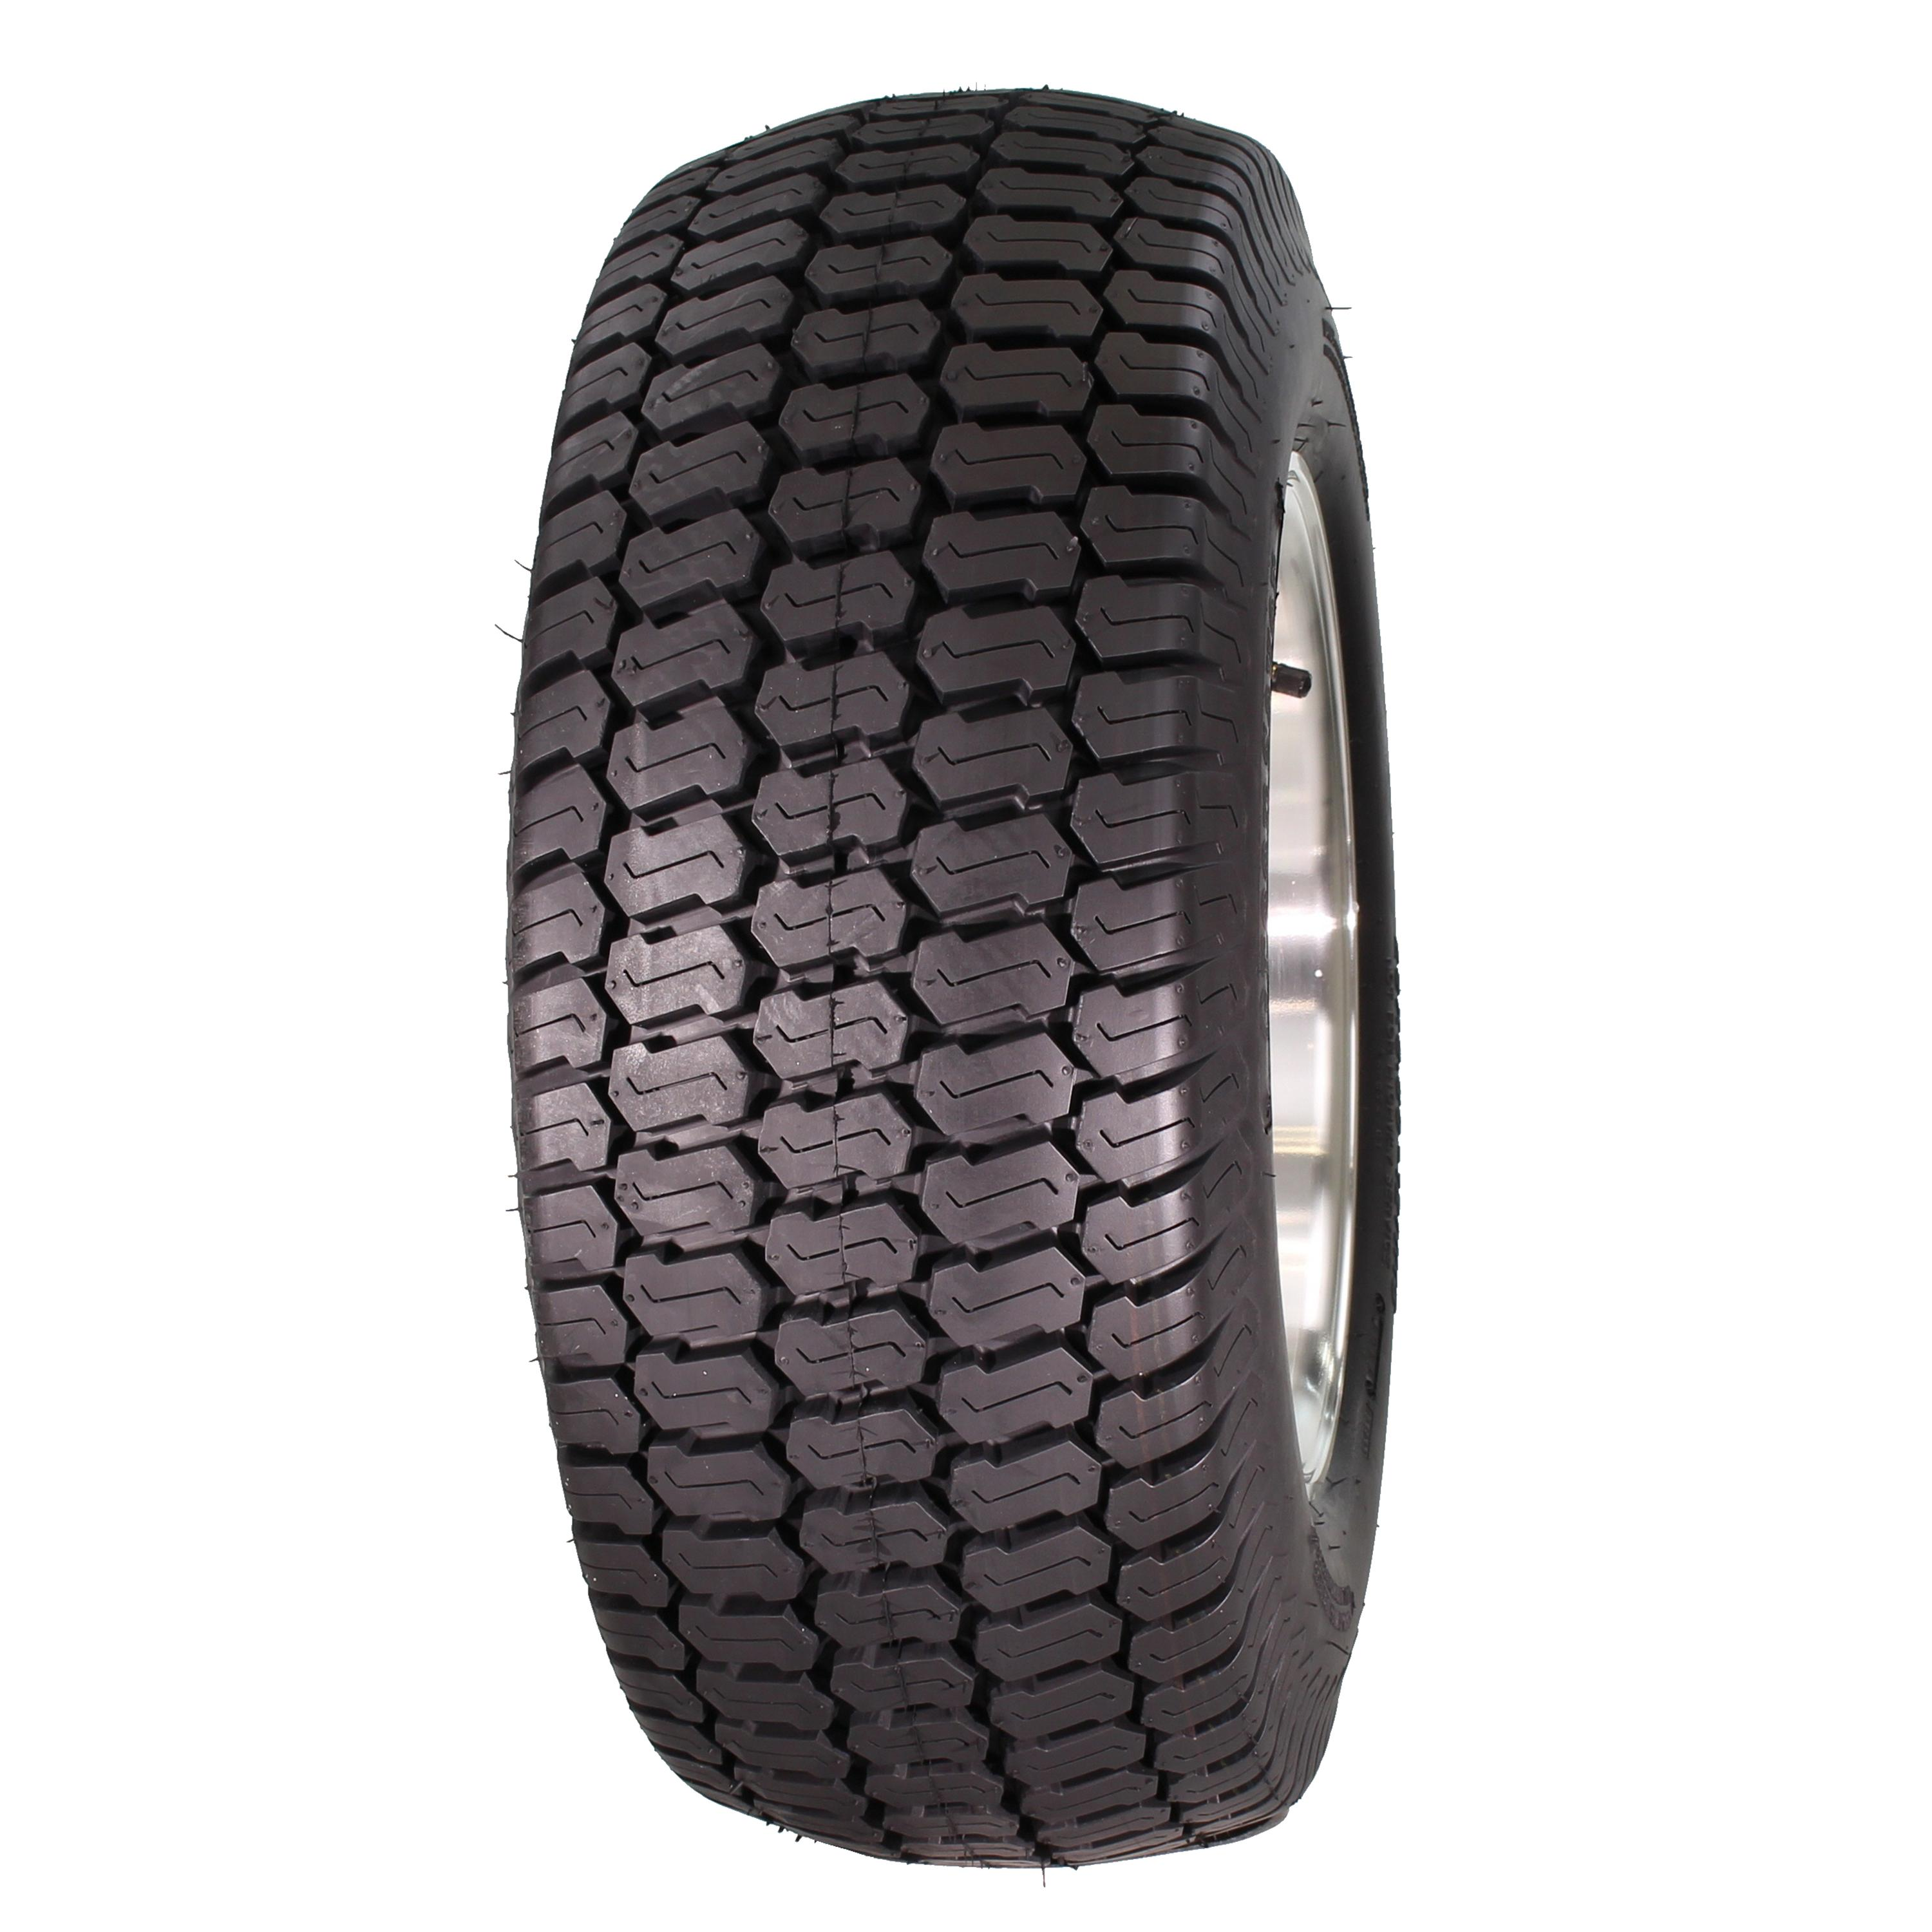 Greenball Transmaster Ultra Turf 23X10.50-12 6 Ply Lawn and Garden Tire (Tire Only)